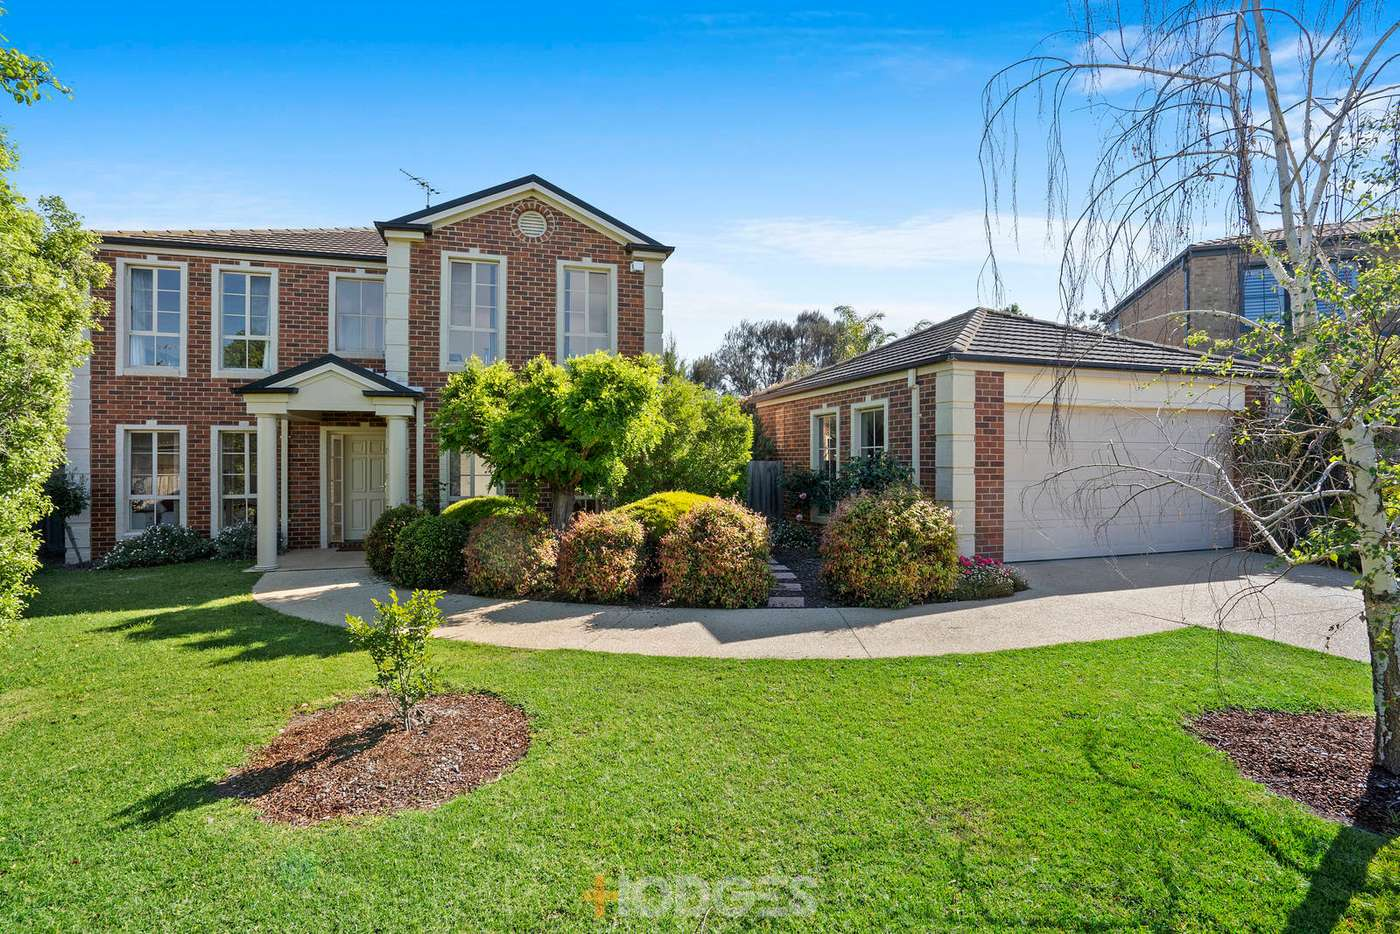 Main view of Homely house listing, 3 Sweeney Court, Highton VIC 3216